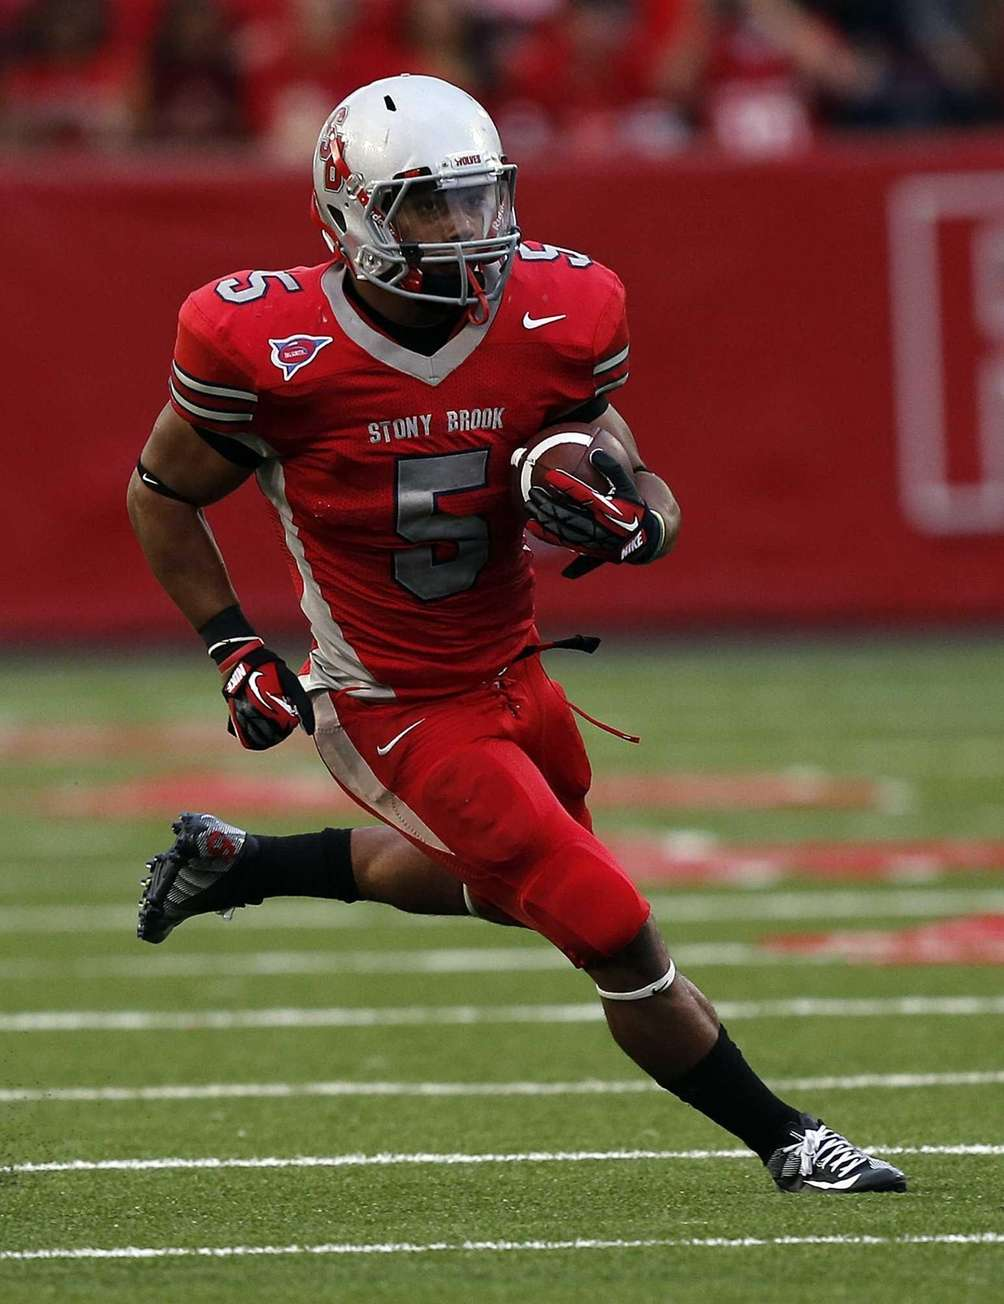 Stony Brook running back MIguel Maysonet runs a